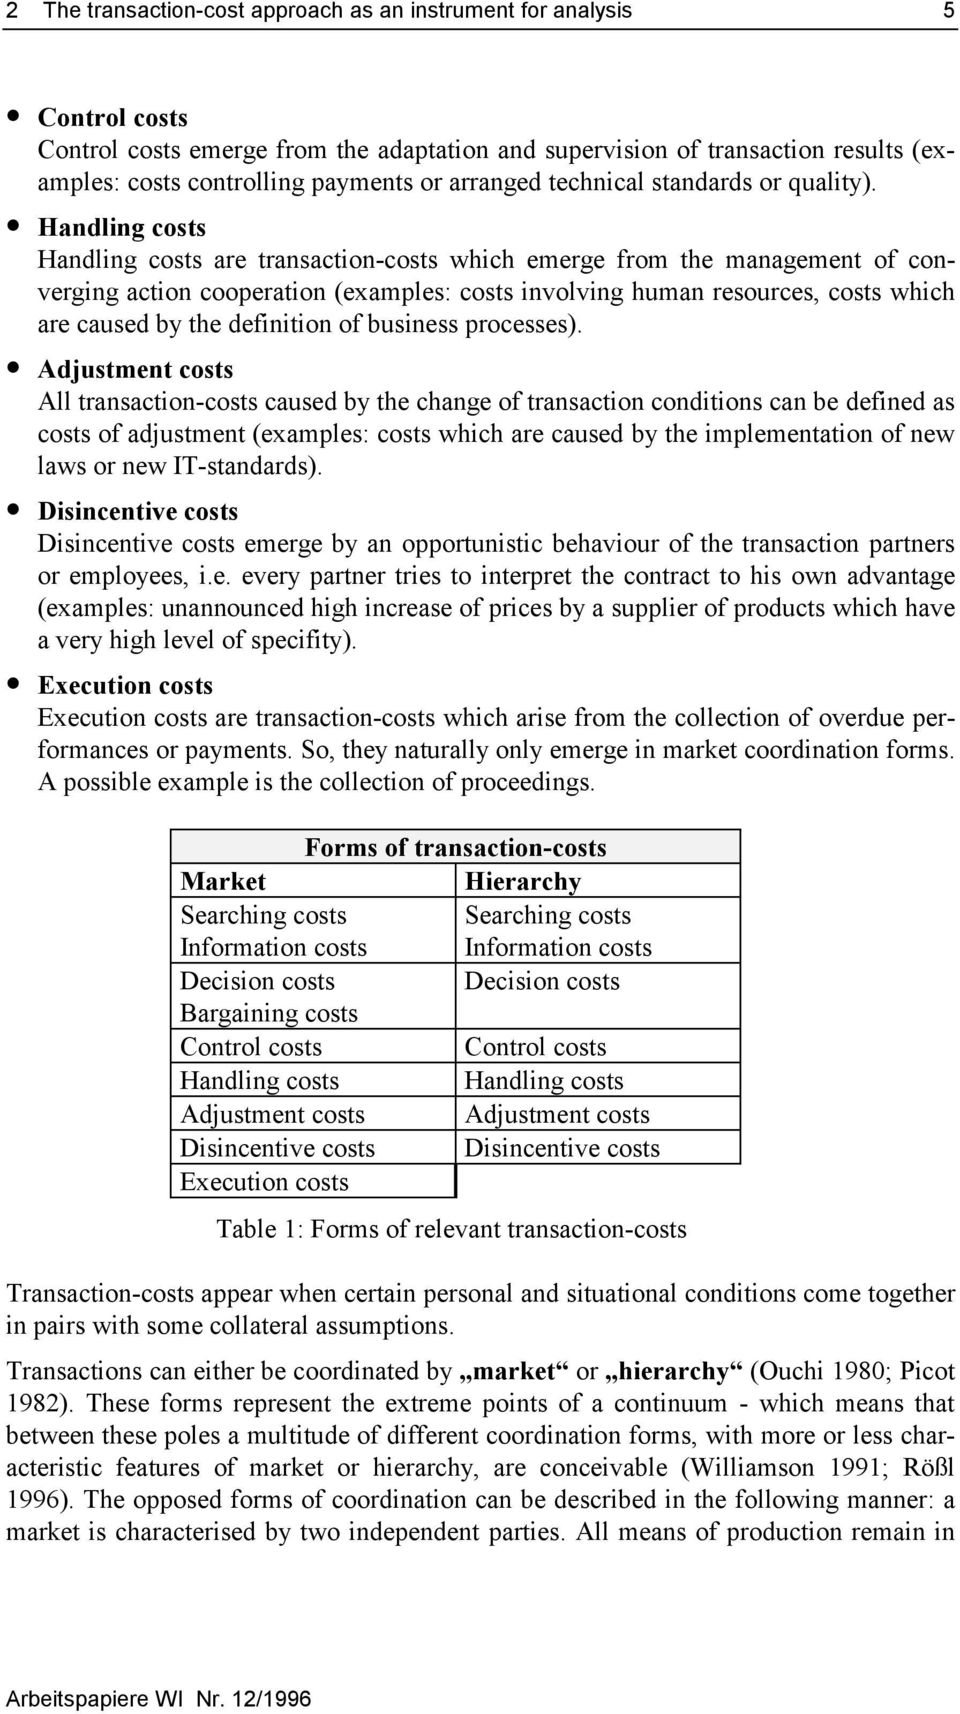 Handling costs Handling costs are transaction-costs which emerge from the management of converging action cooperation (examples: costs involving human resources, costs which are caused by the